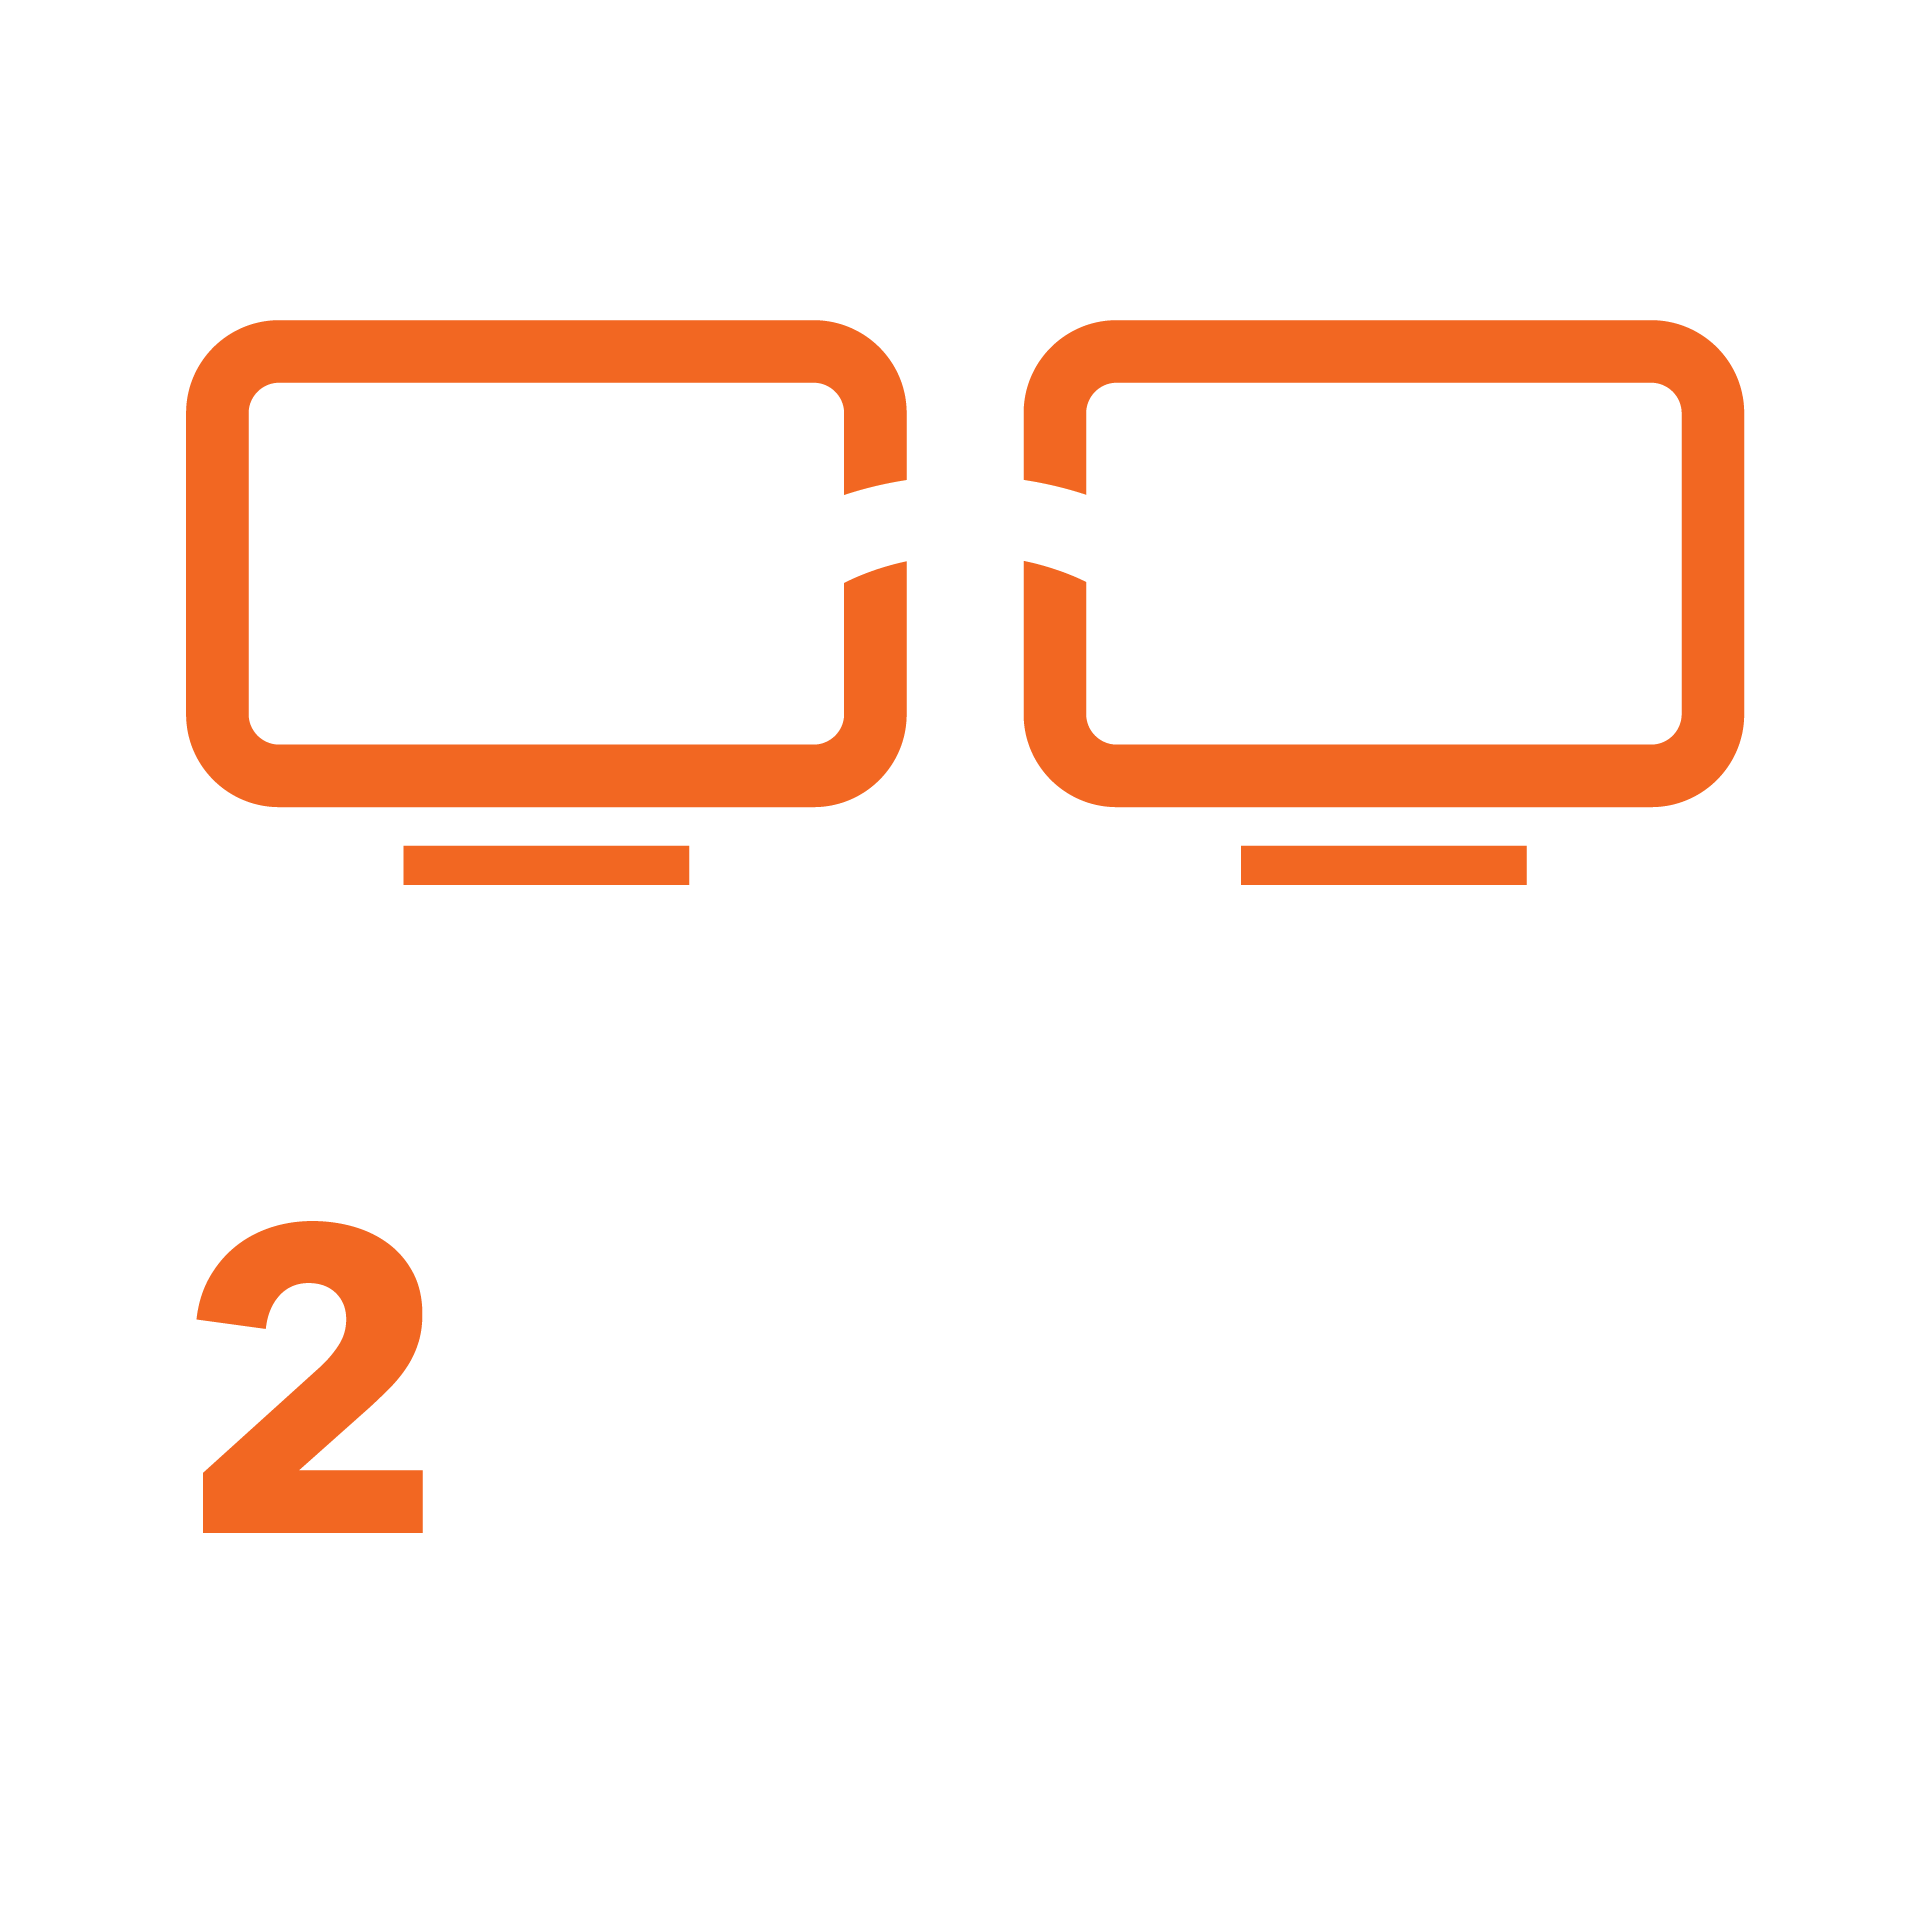 Connect2geek Support Services